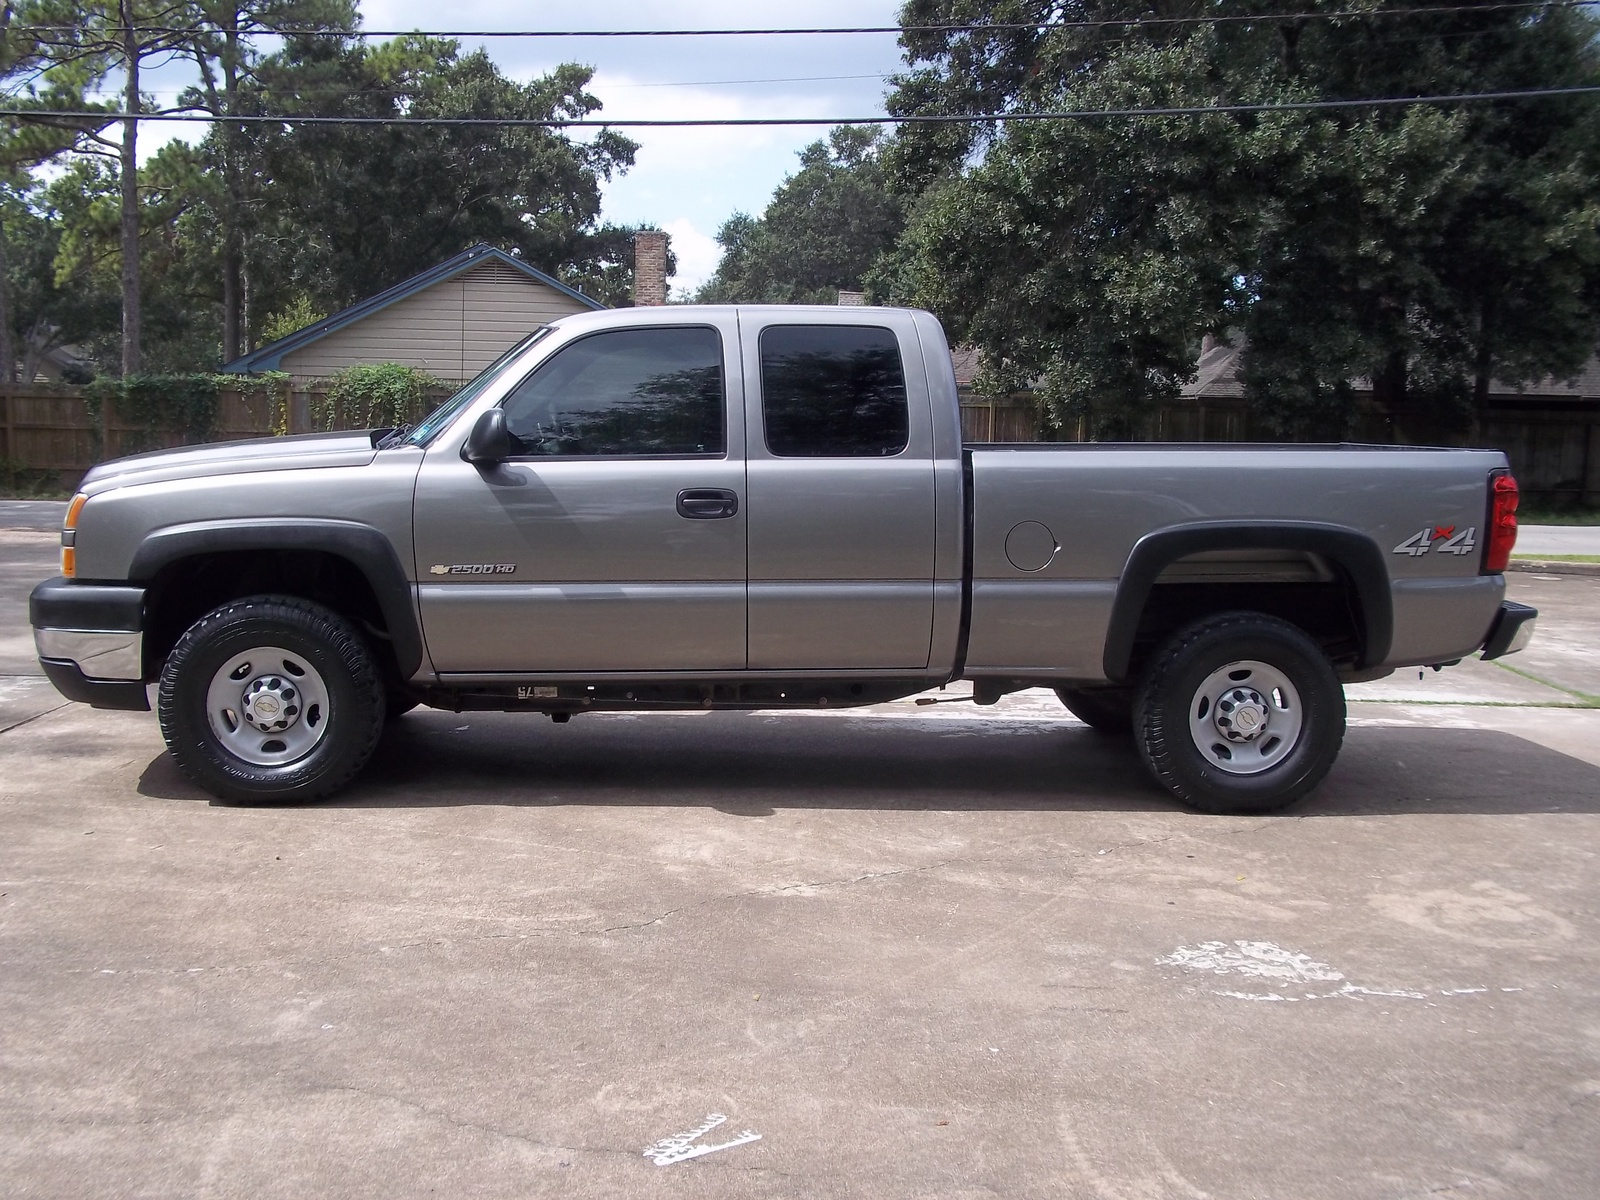 Craigslist San Antonio Tx Cars And Trucks